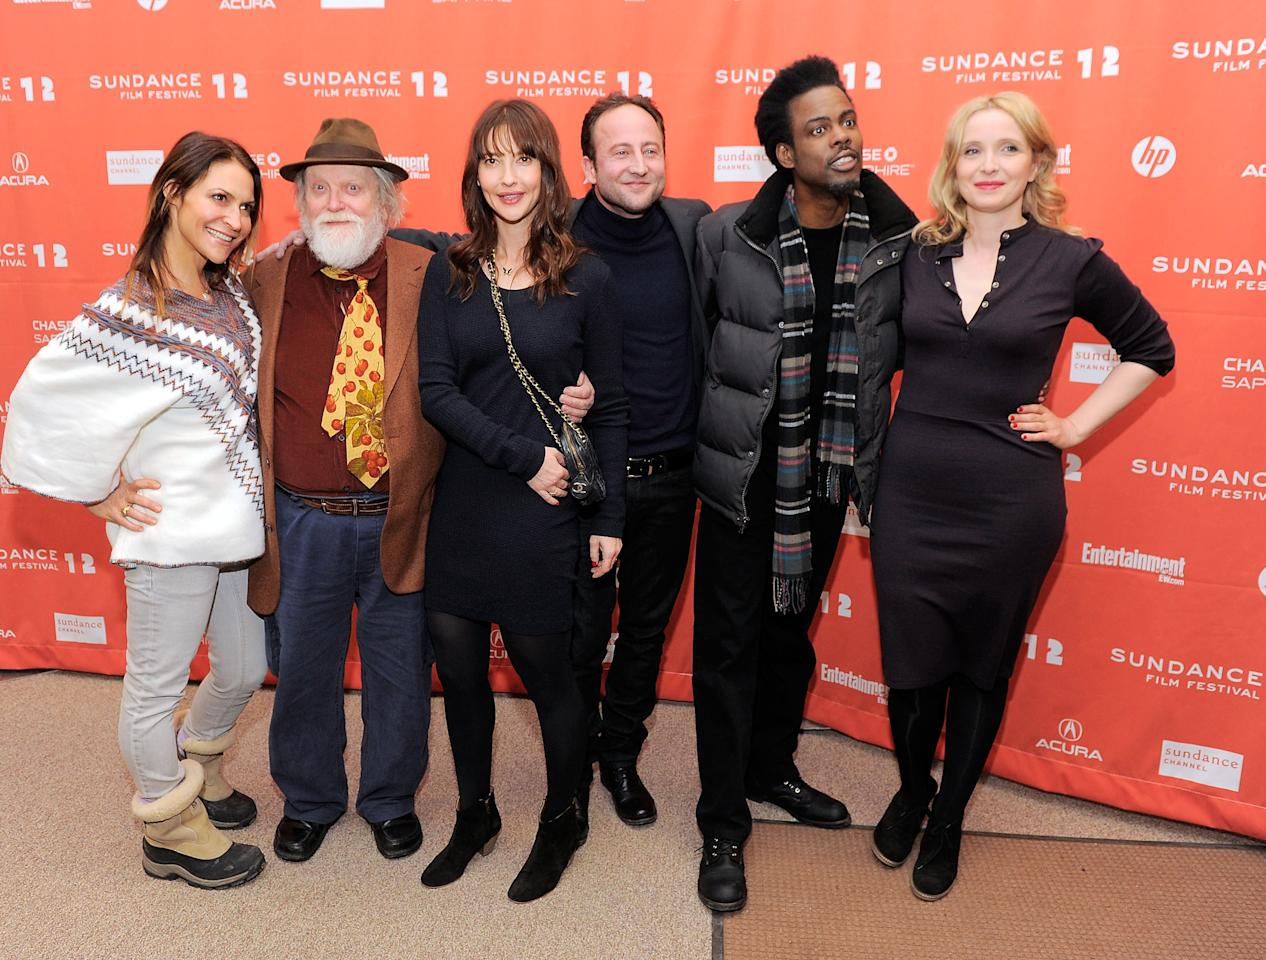 """PARK CITY, UT - JANUARY 23:  (L-R) Actors Emily Wagner, Albert Delpy, Alexia Landeau, Alexandre Nahon, Chris Rock and Julie Delpy attend the """"2 Days In New York"""" premiere during the 2012 Sundance Film Festival held at Eccles Center Theatre on January 23, 2012 in Park City, Utah.  (Photo by Jemal Countess/Getty Images)"""